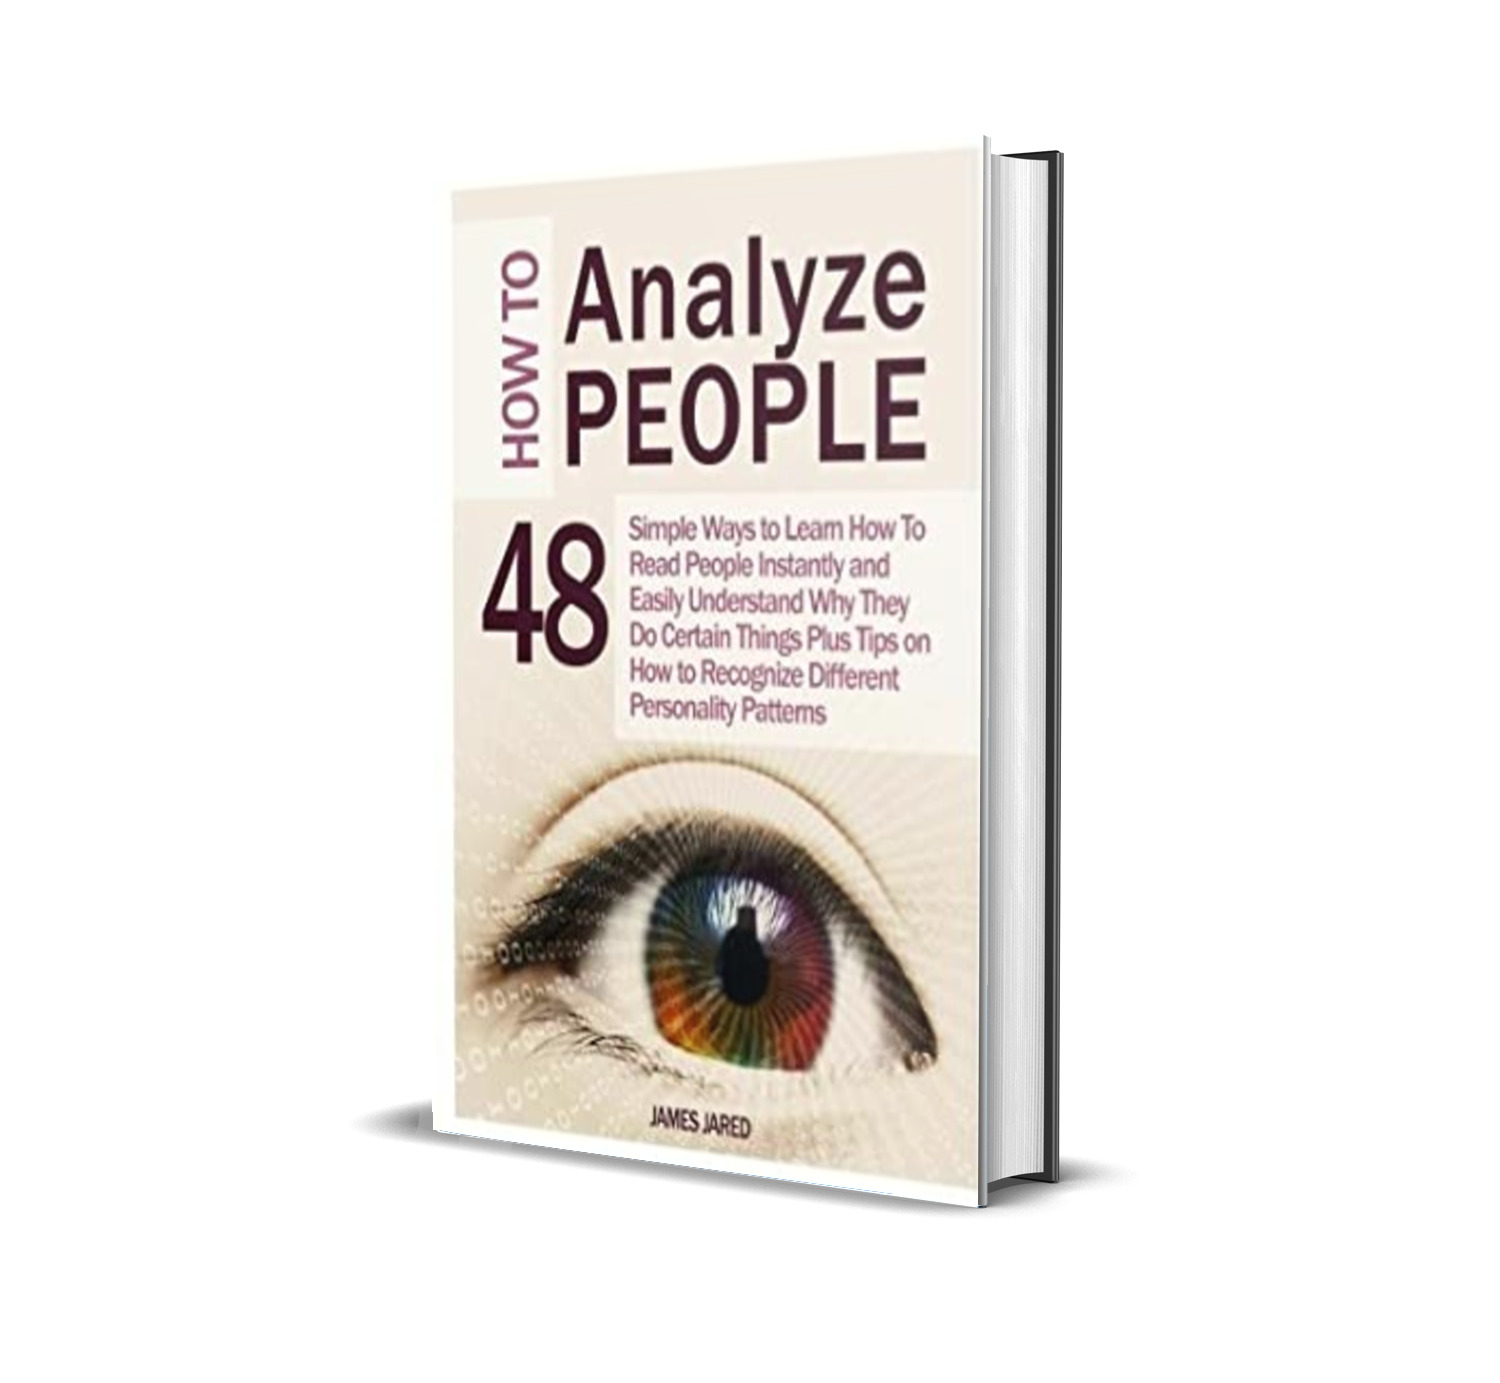 How to analyze people- Jared